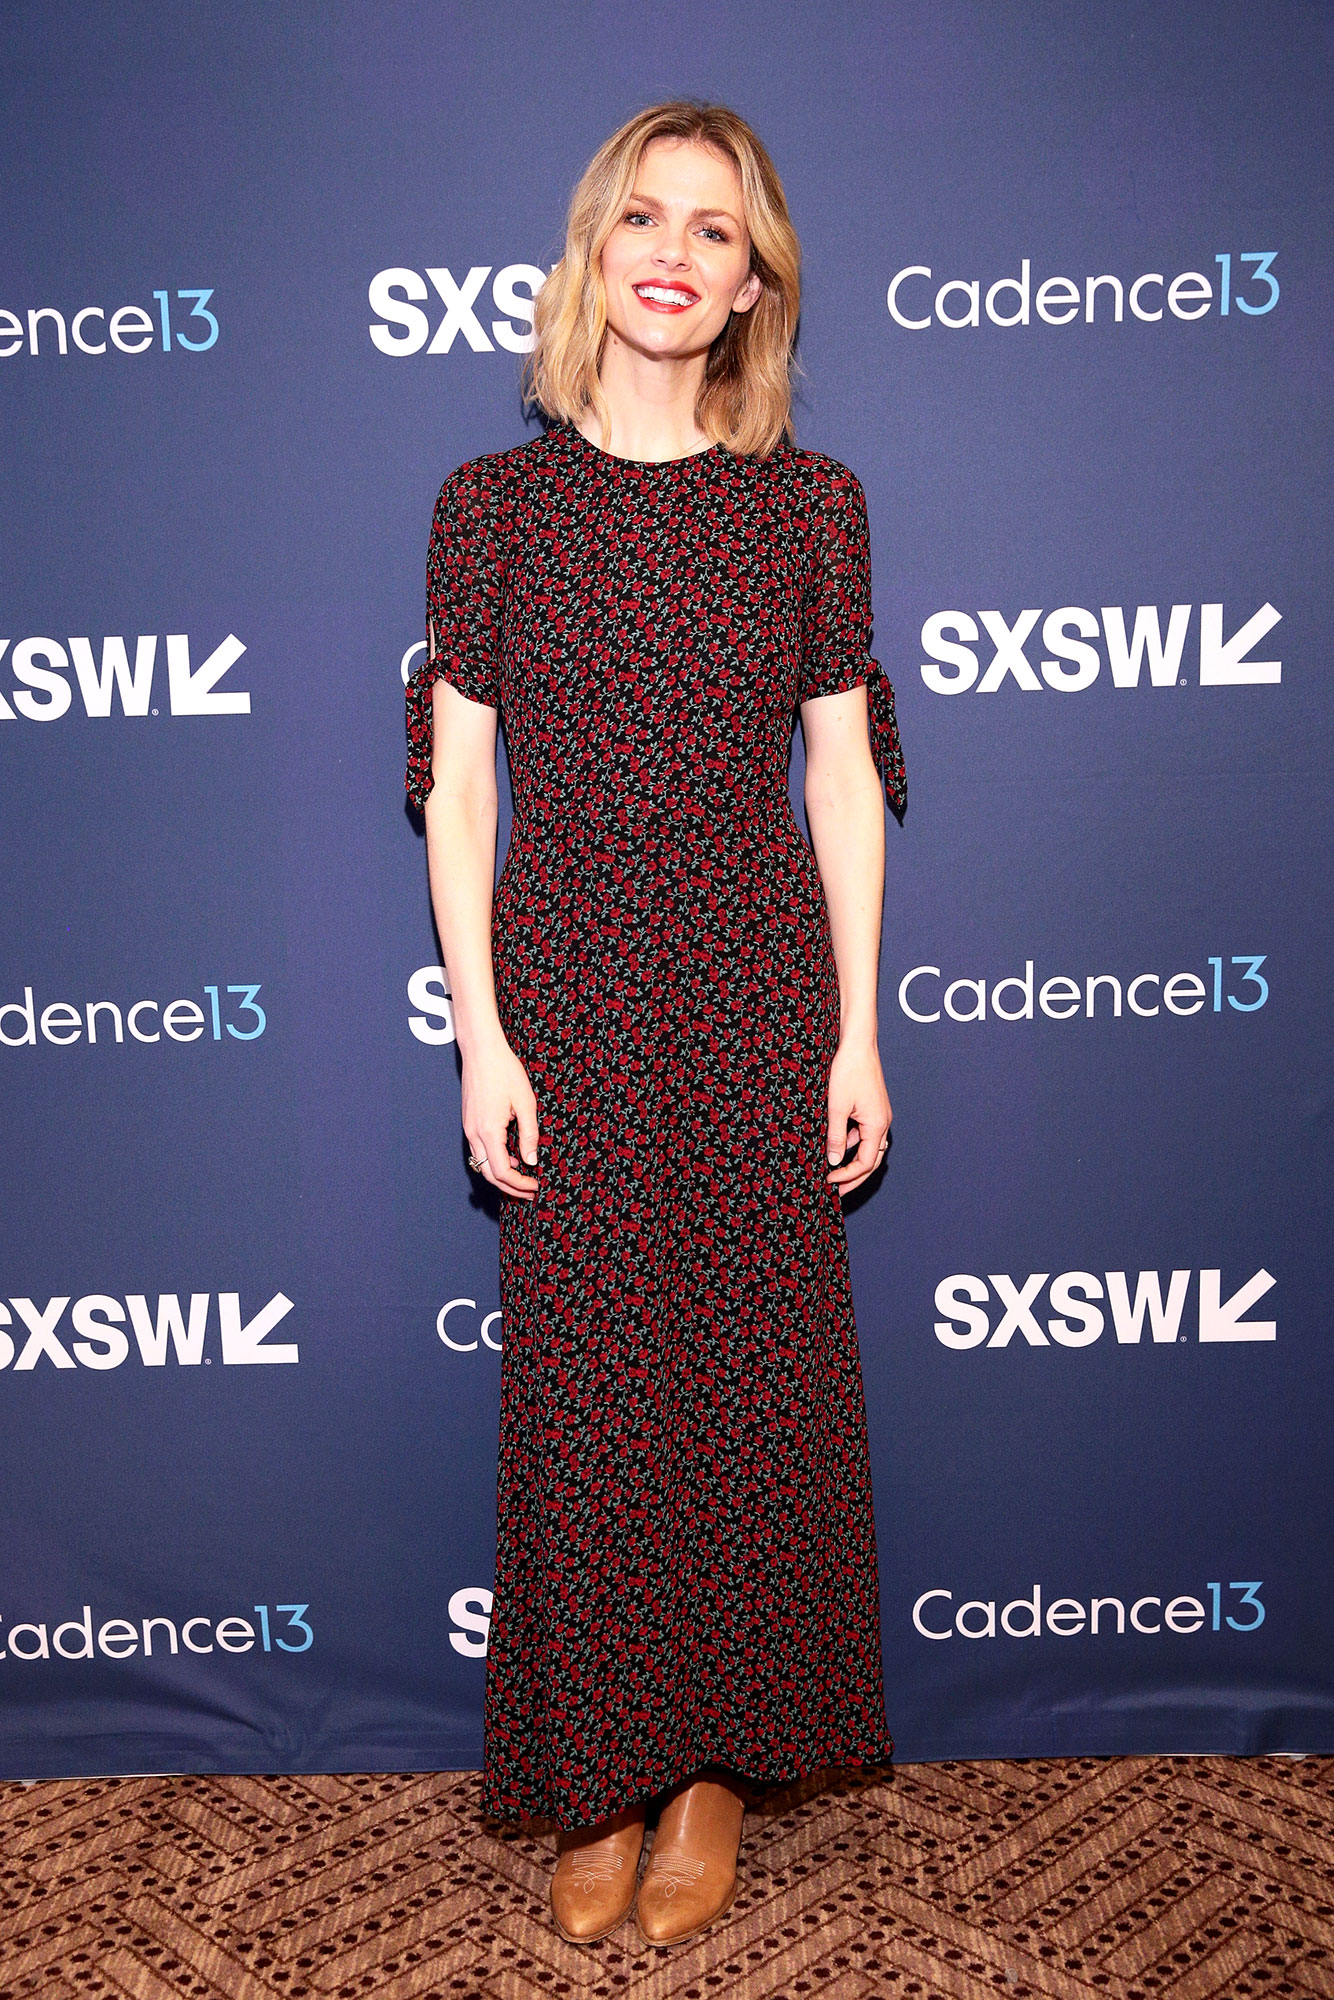 The Stars Bring Their Beauty and Style A-Game to SXSW - Delivering a masterclass in transitional dressing, the model paired her flower-printed frock with cute boots on Friday, March 8.